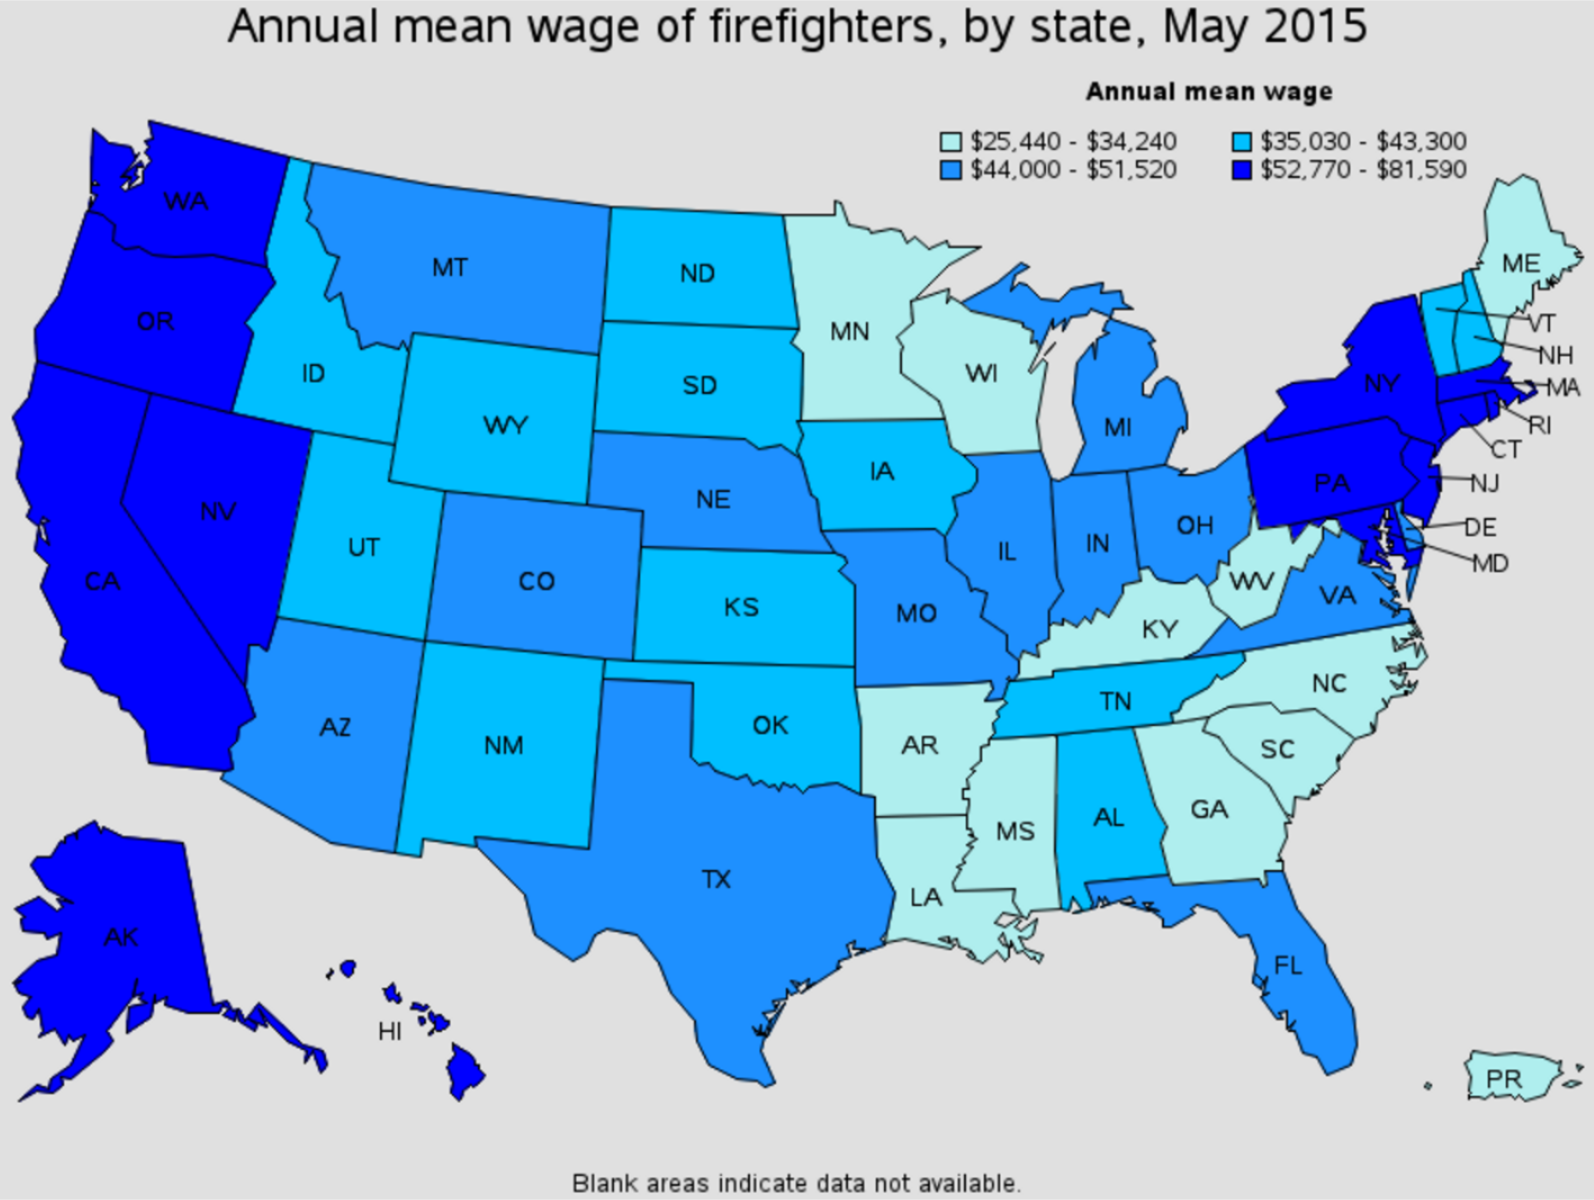 firefighter average salary by state Corona New York